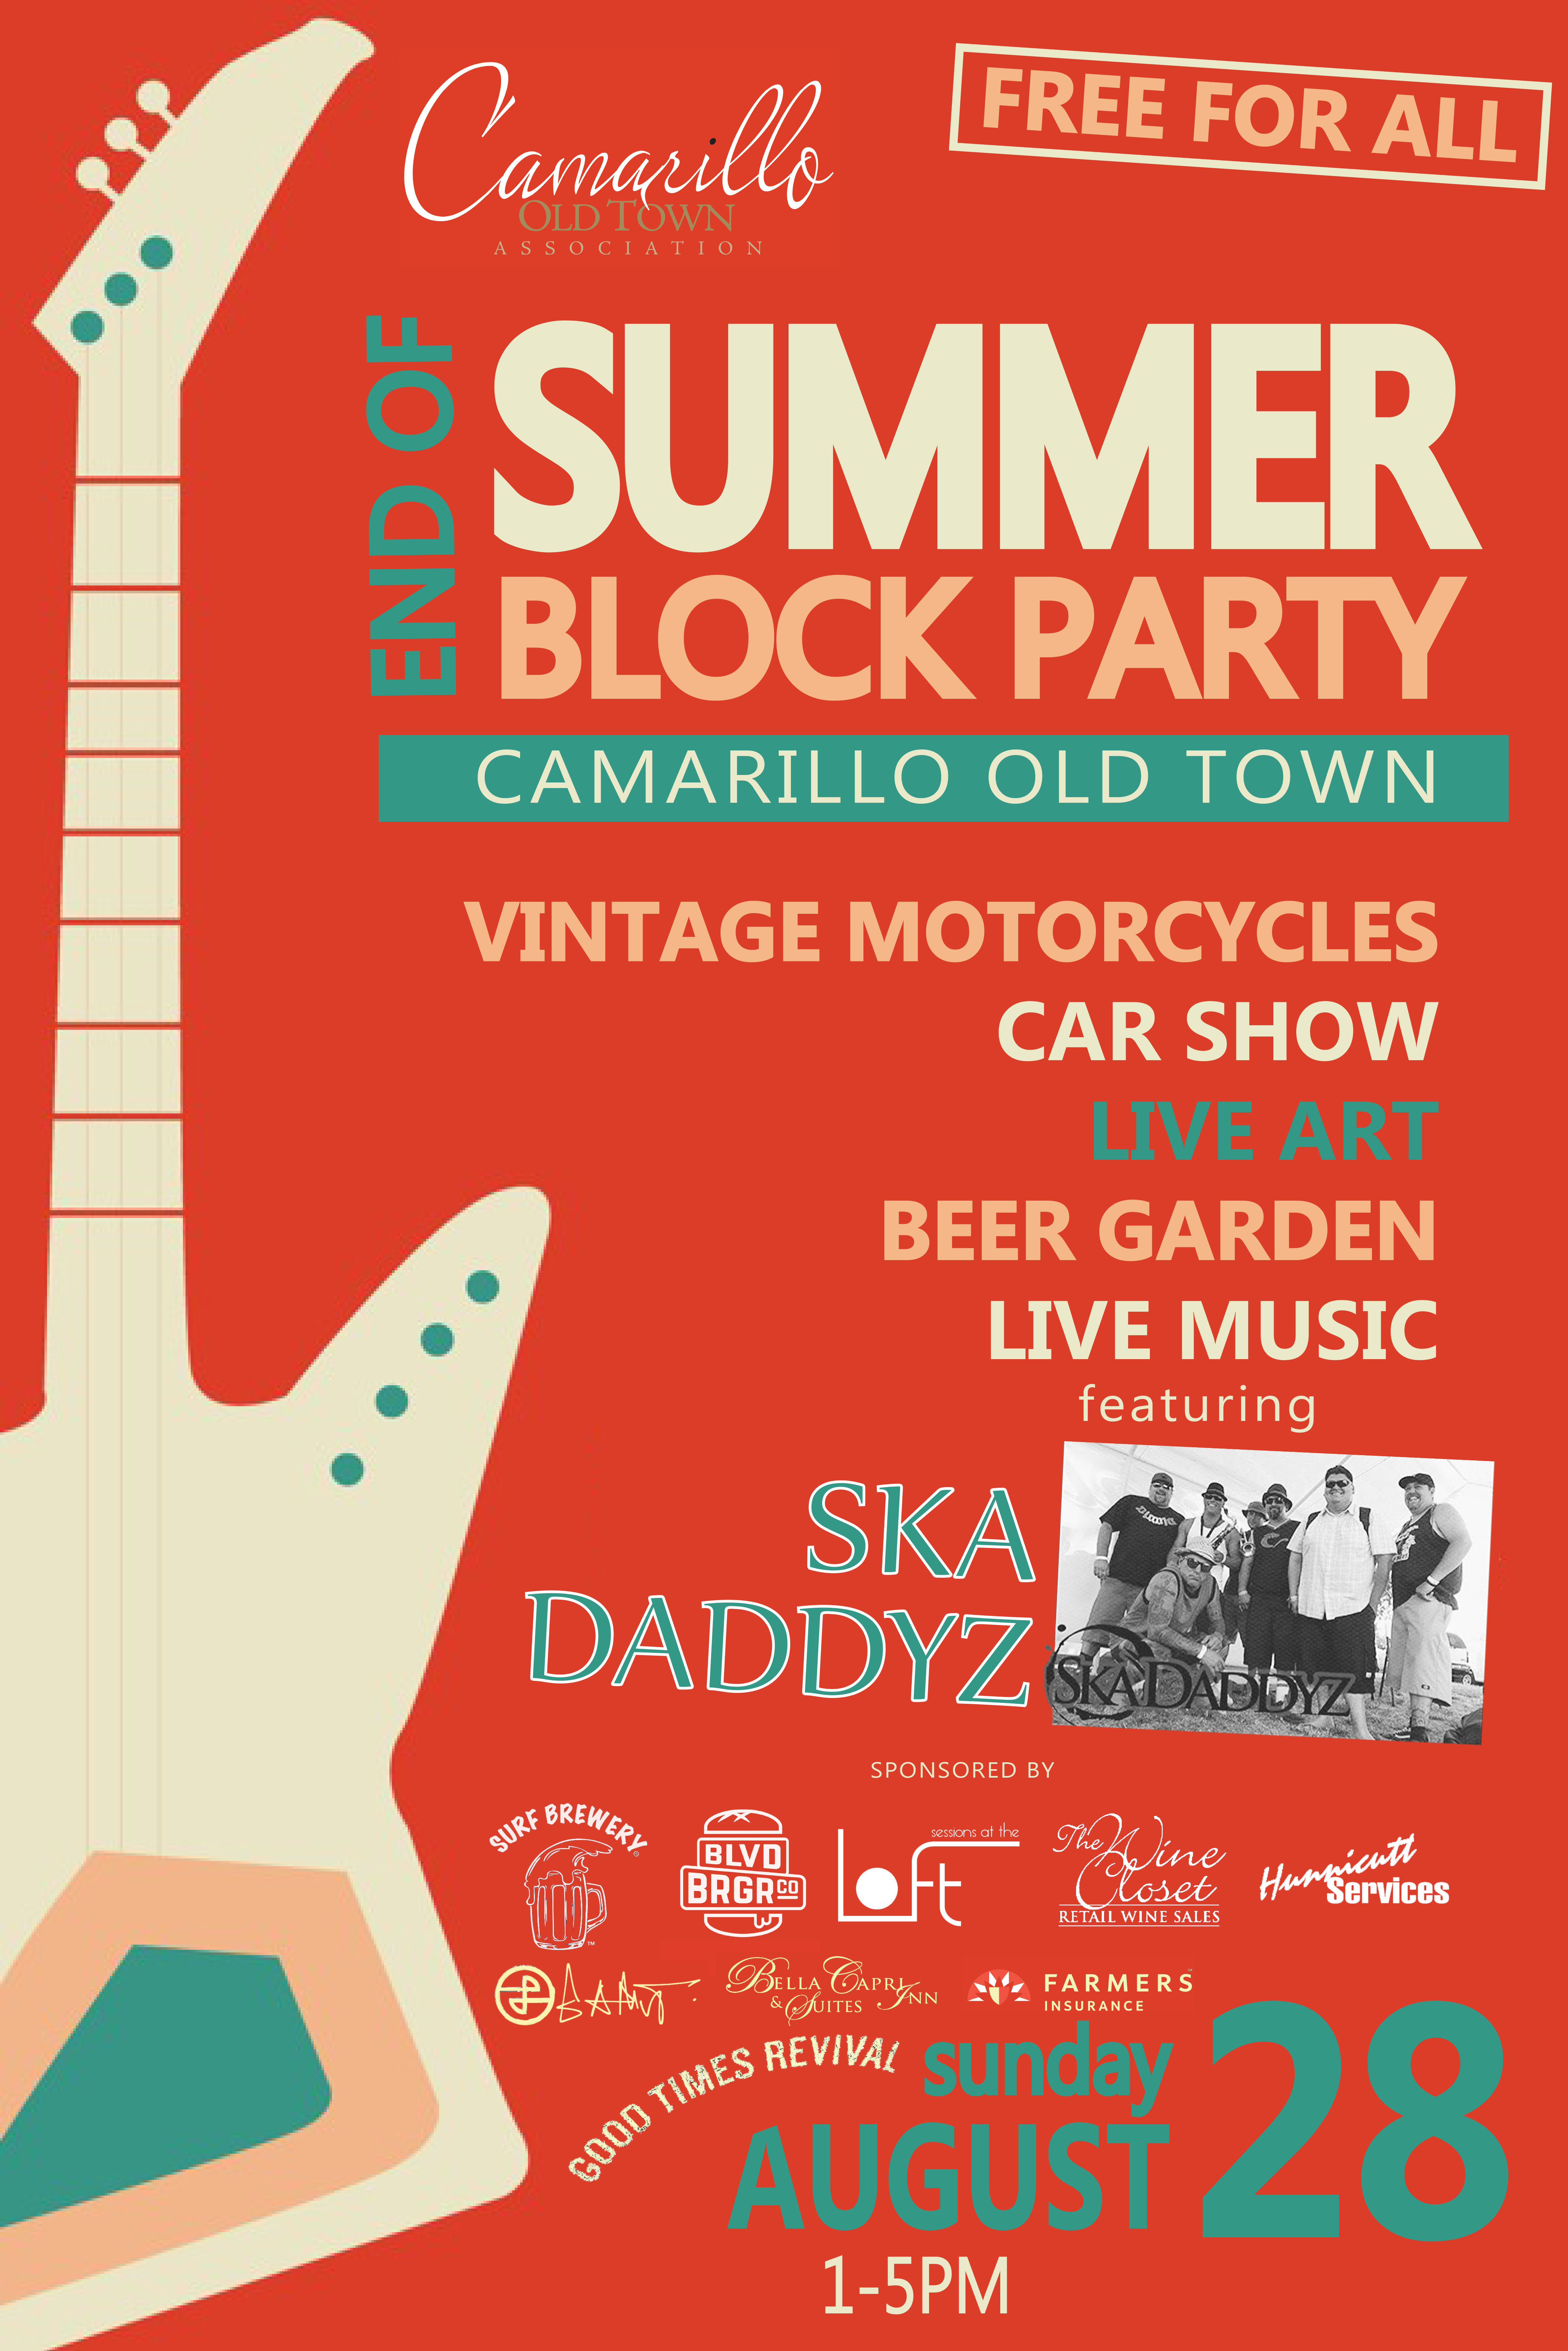 End of Summer Block Party